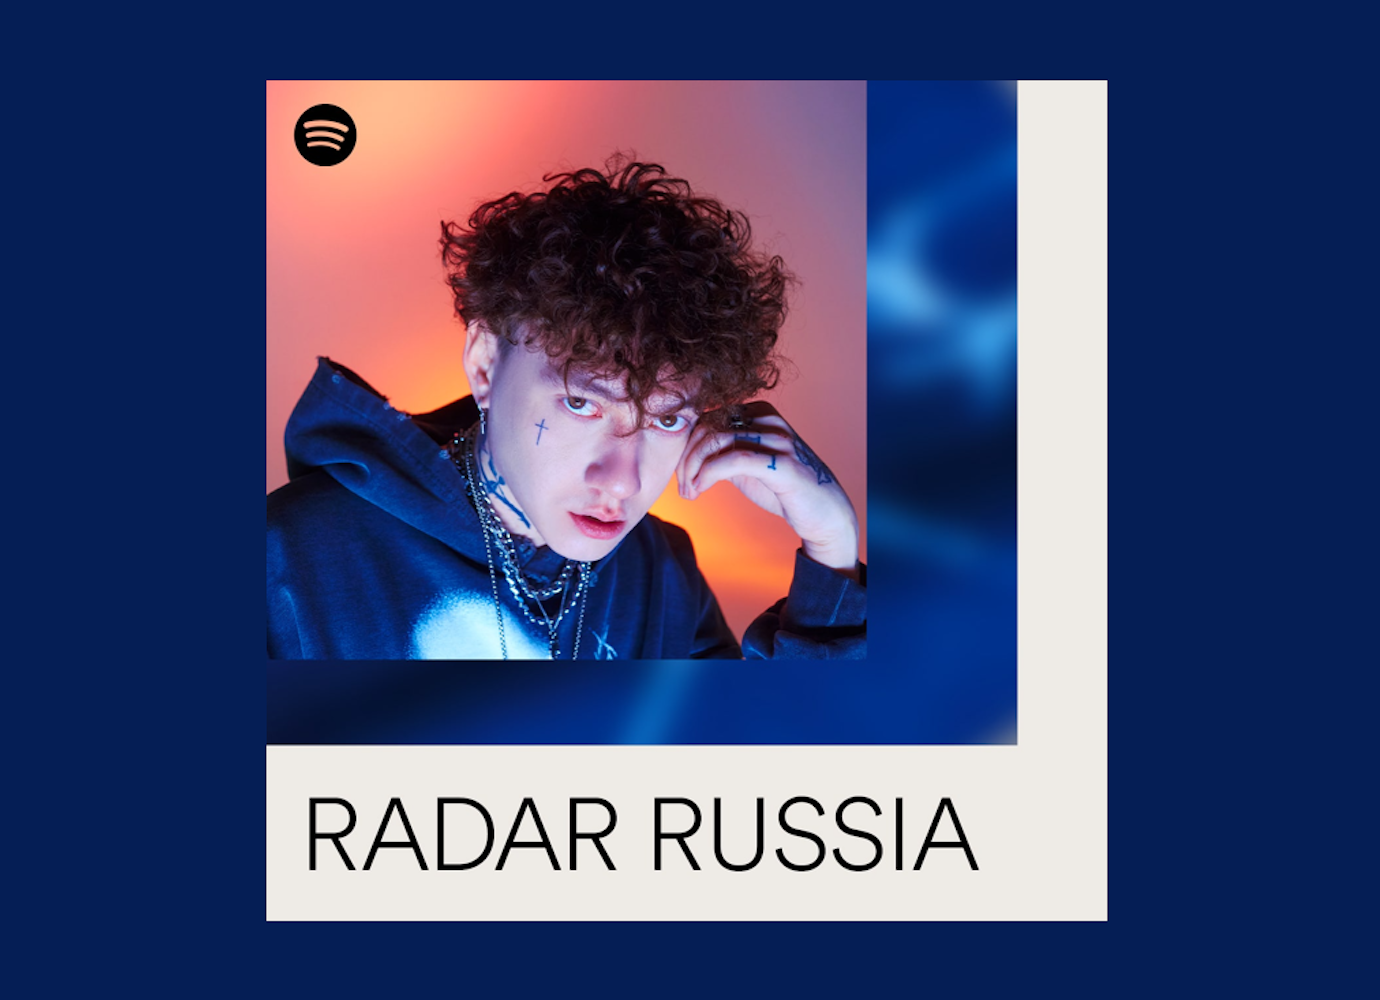 Radar Russia: get to know Russia's emerging musicians on Spotify